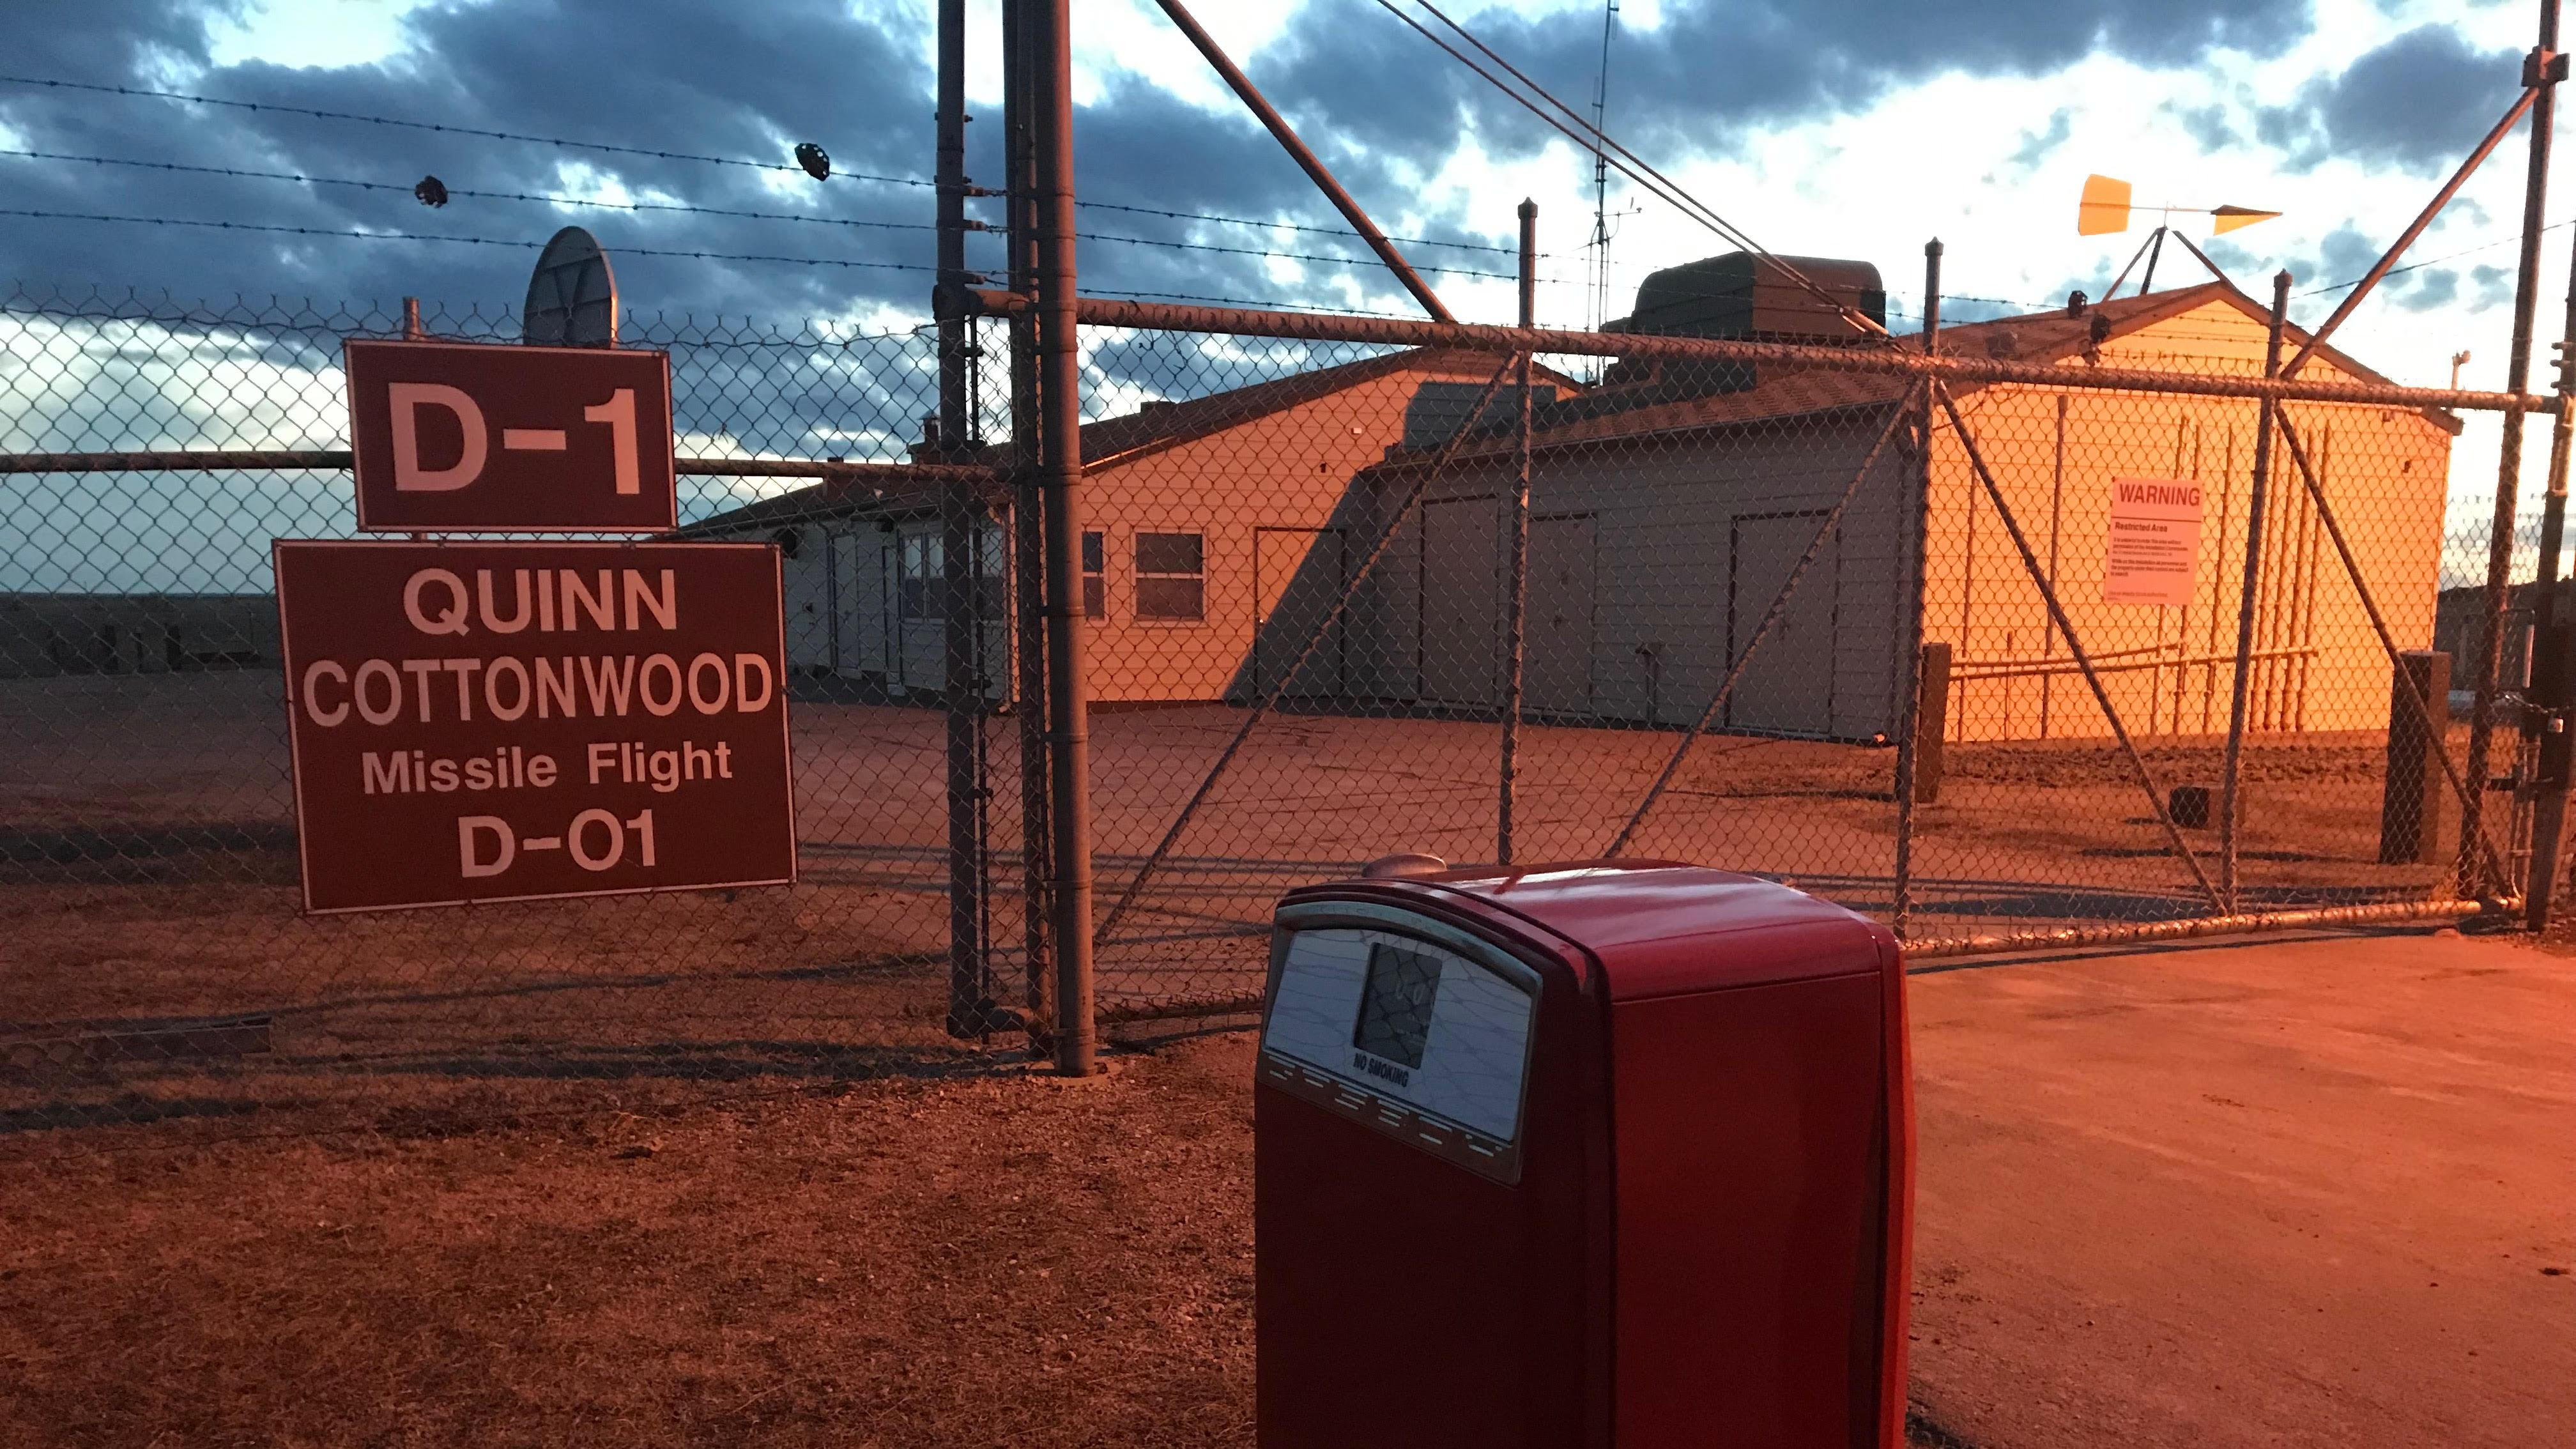 a red gas pump stands outside a fenced compound with a large tan building